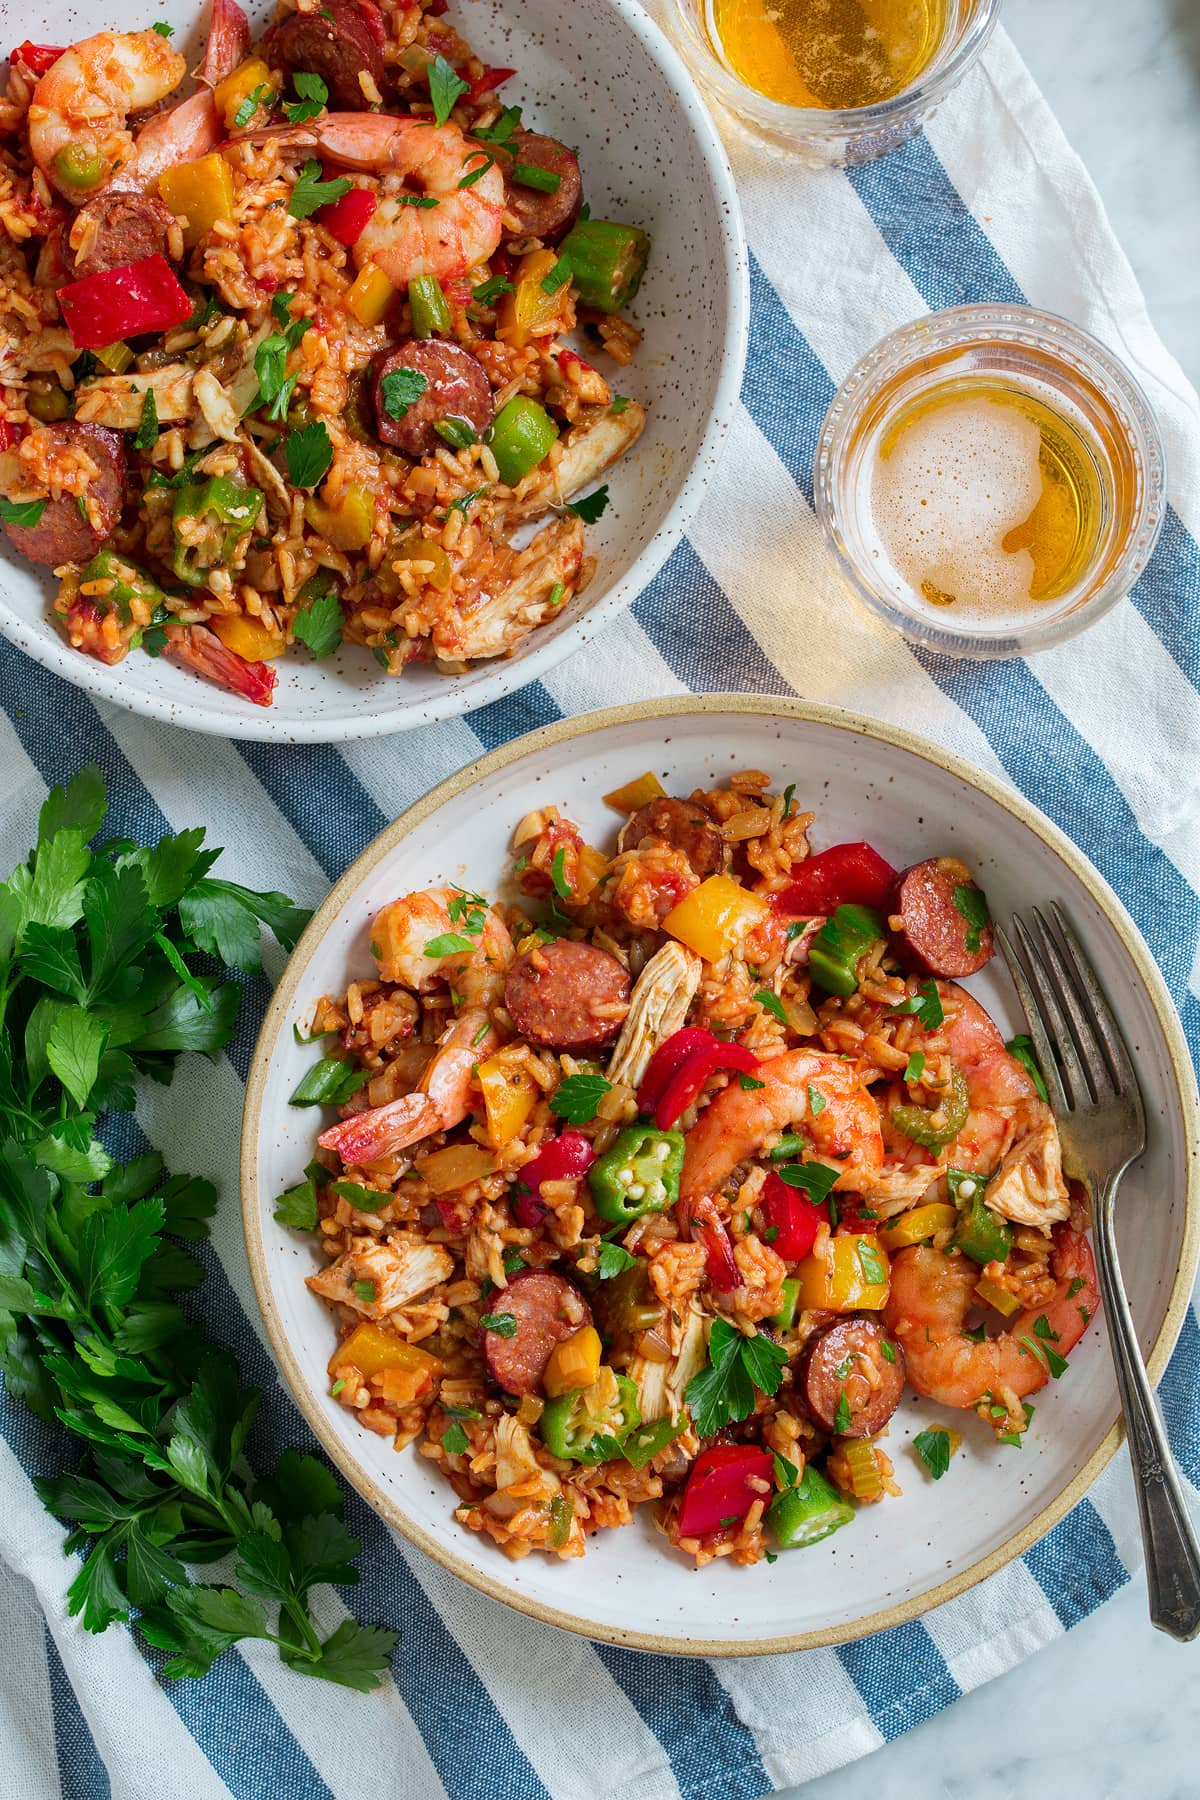 Two servings of jambalaya in bowls.